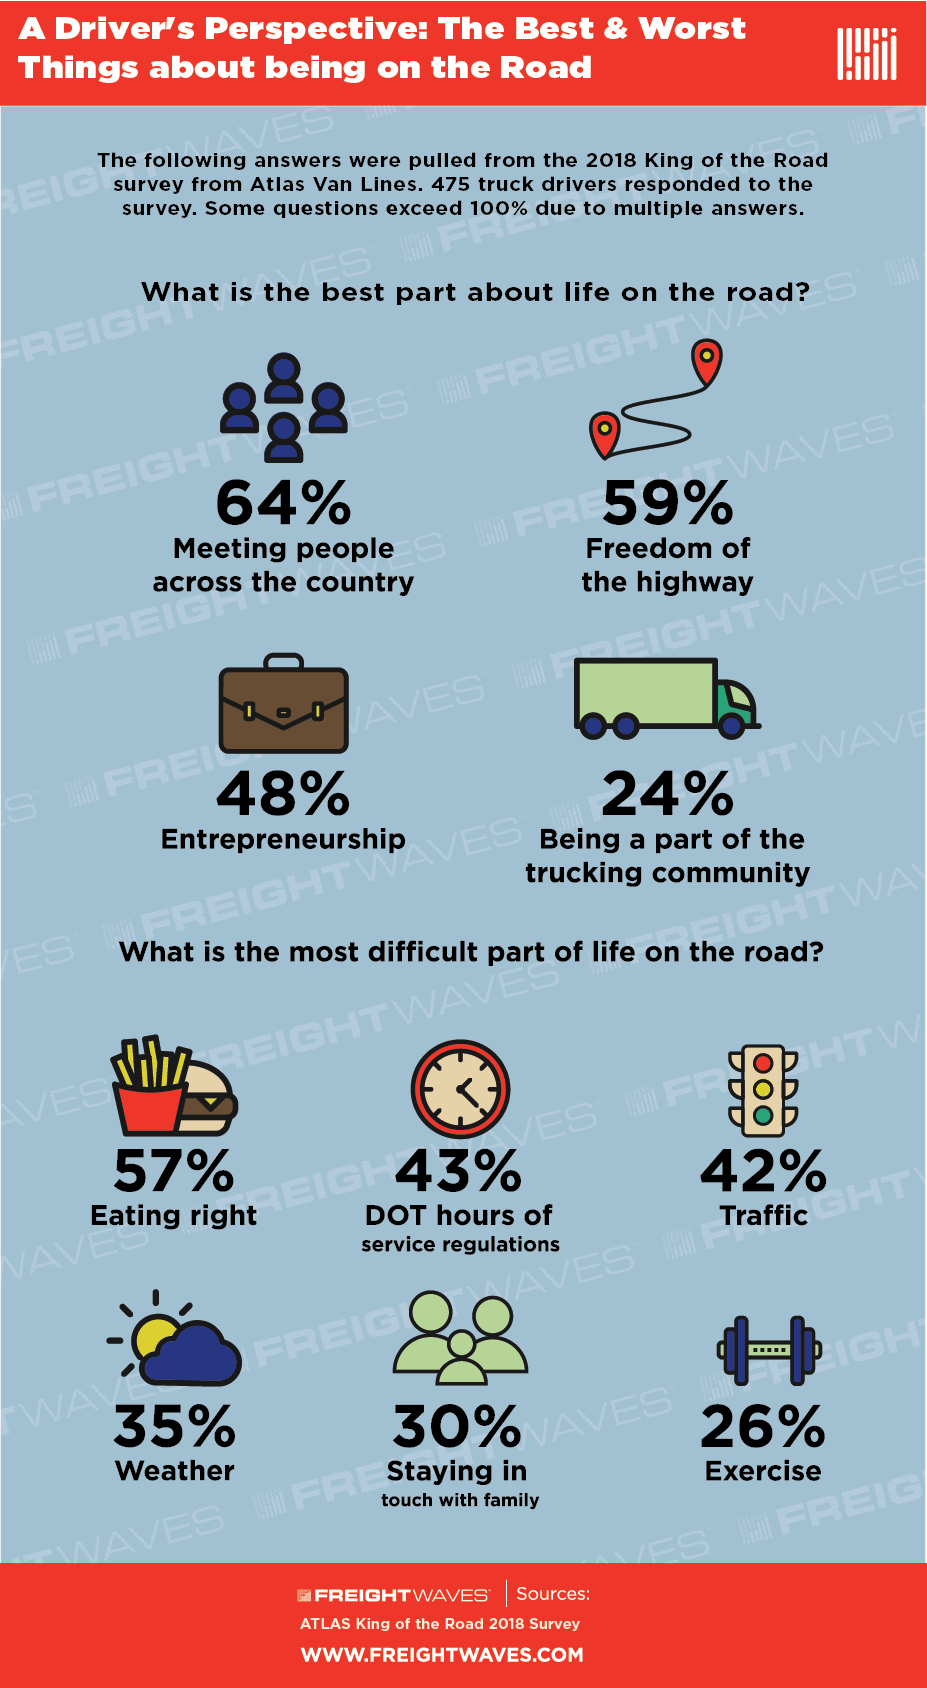 drivers-perspective-best-worst-parts-of-road-life-infographic.png